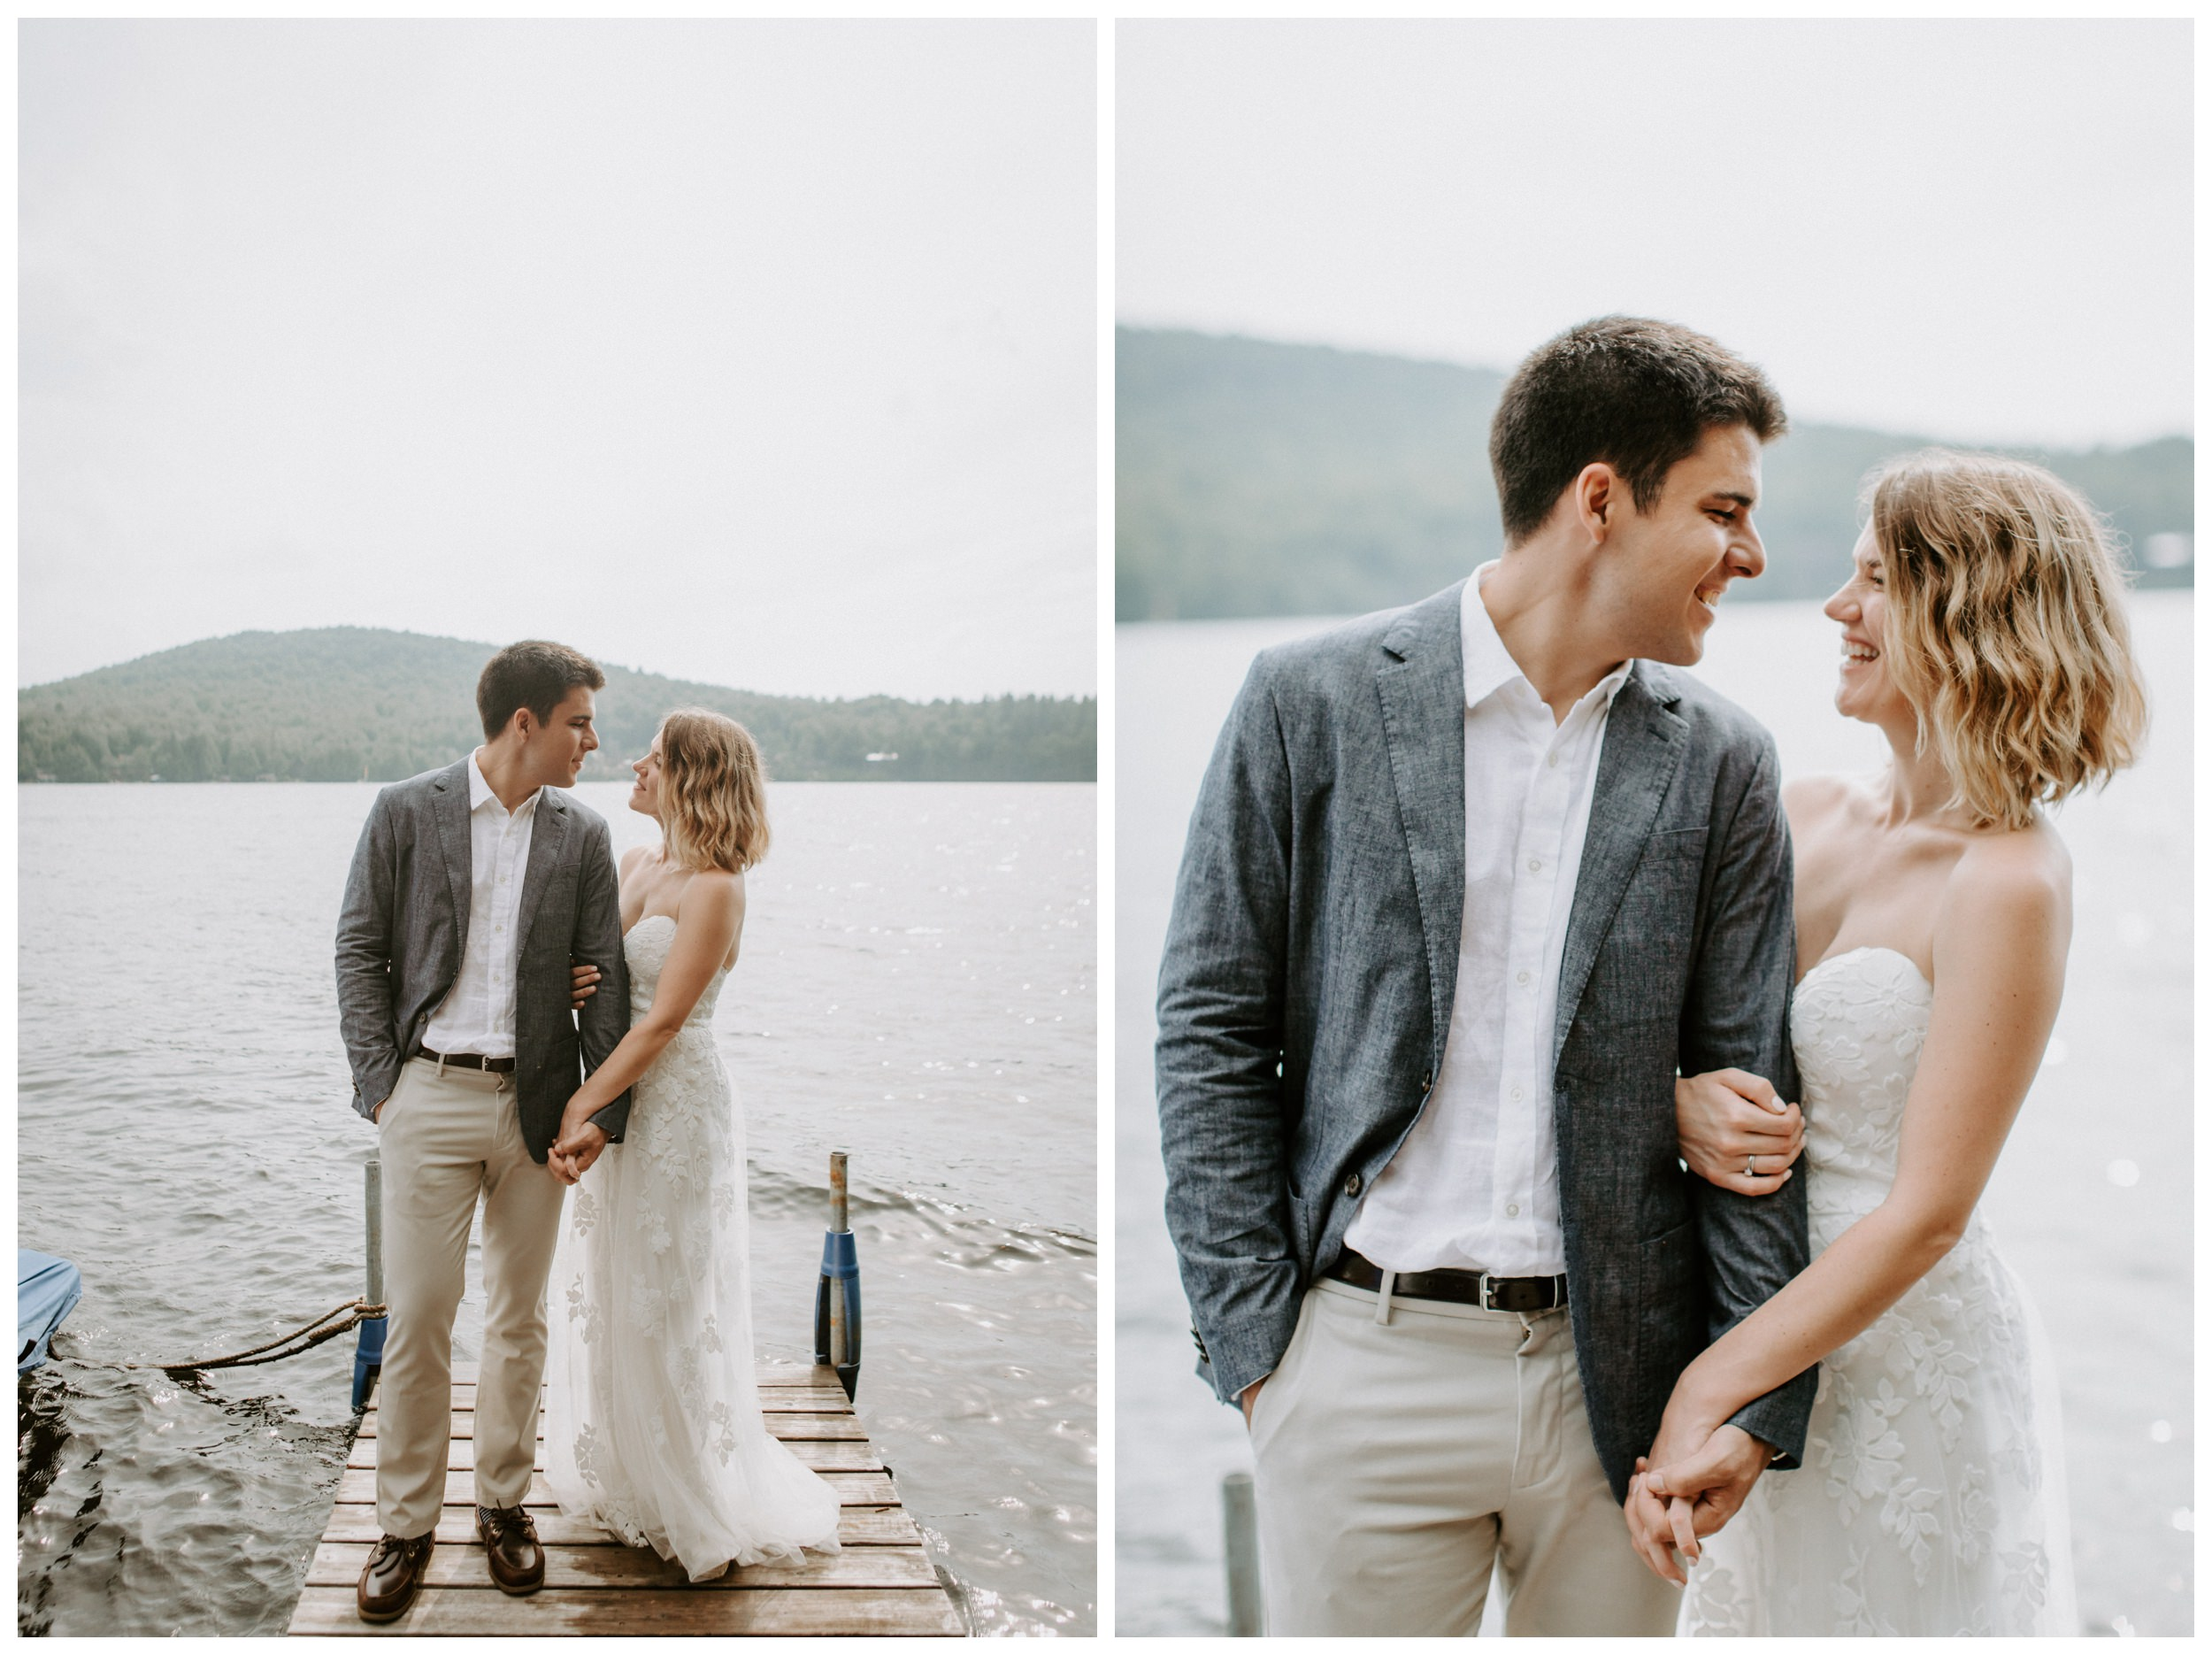 intimate-lakeside-wedding-adirondack-mountains37.jpg